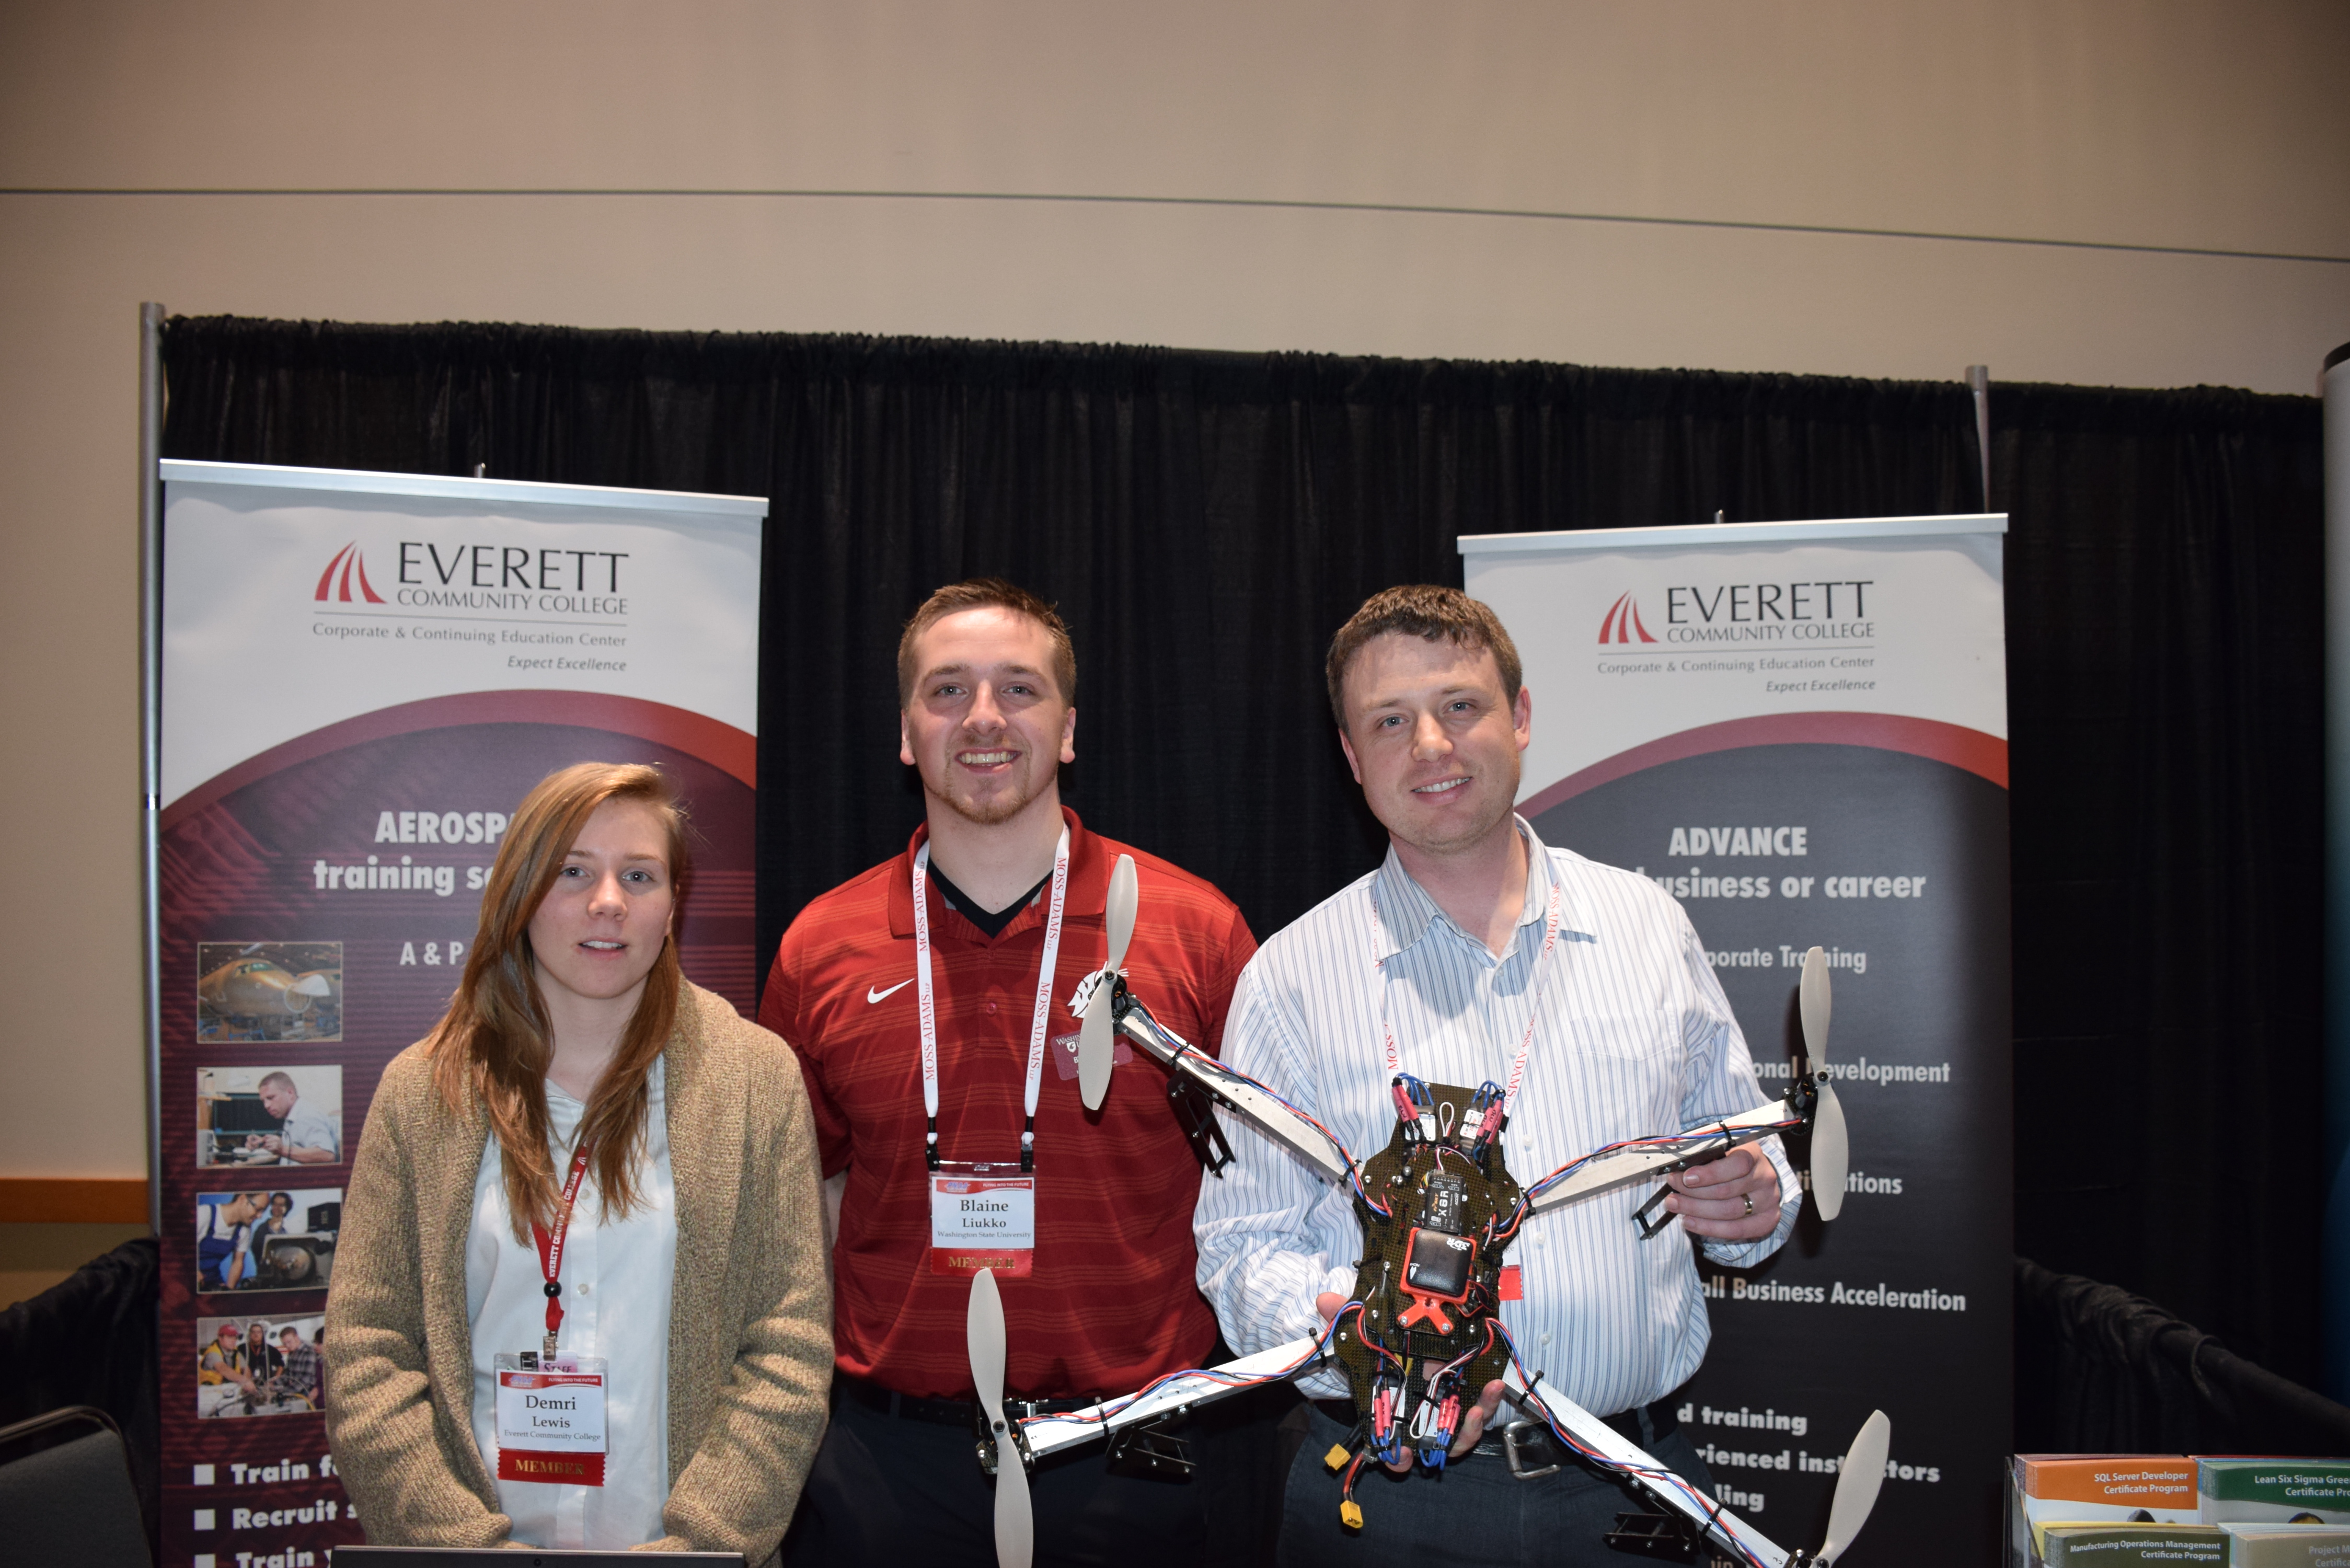 Students from Everett Community College and WSU show off a UAS that they built (Thor Nelson, profiled, is holding the UAS on the right; Demri Lewis and Blain Liukko left - right).